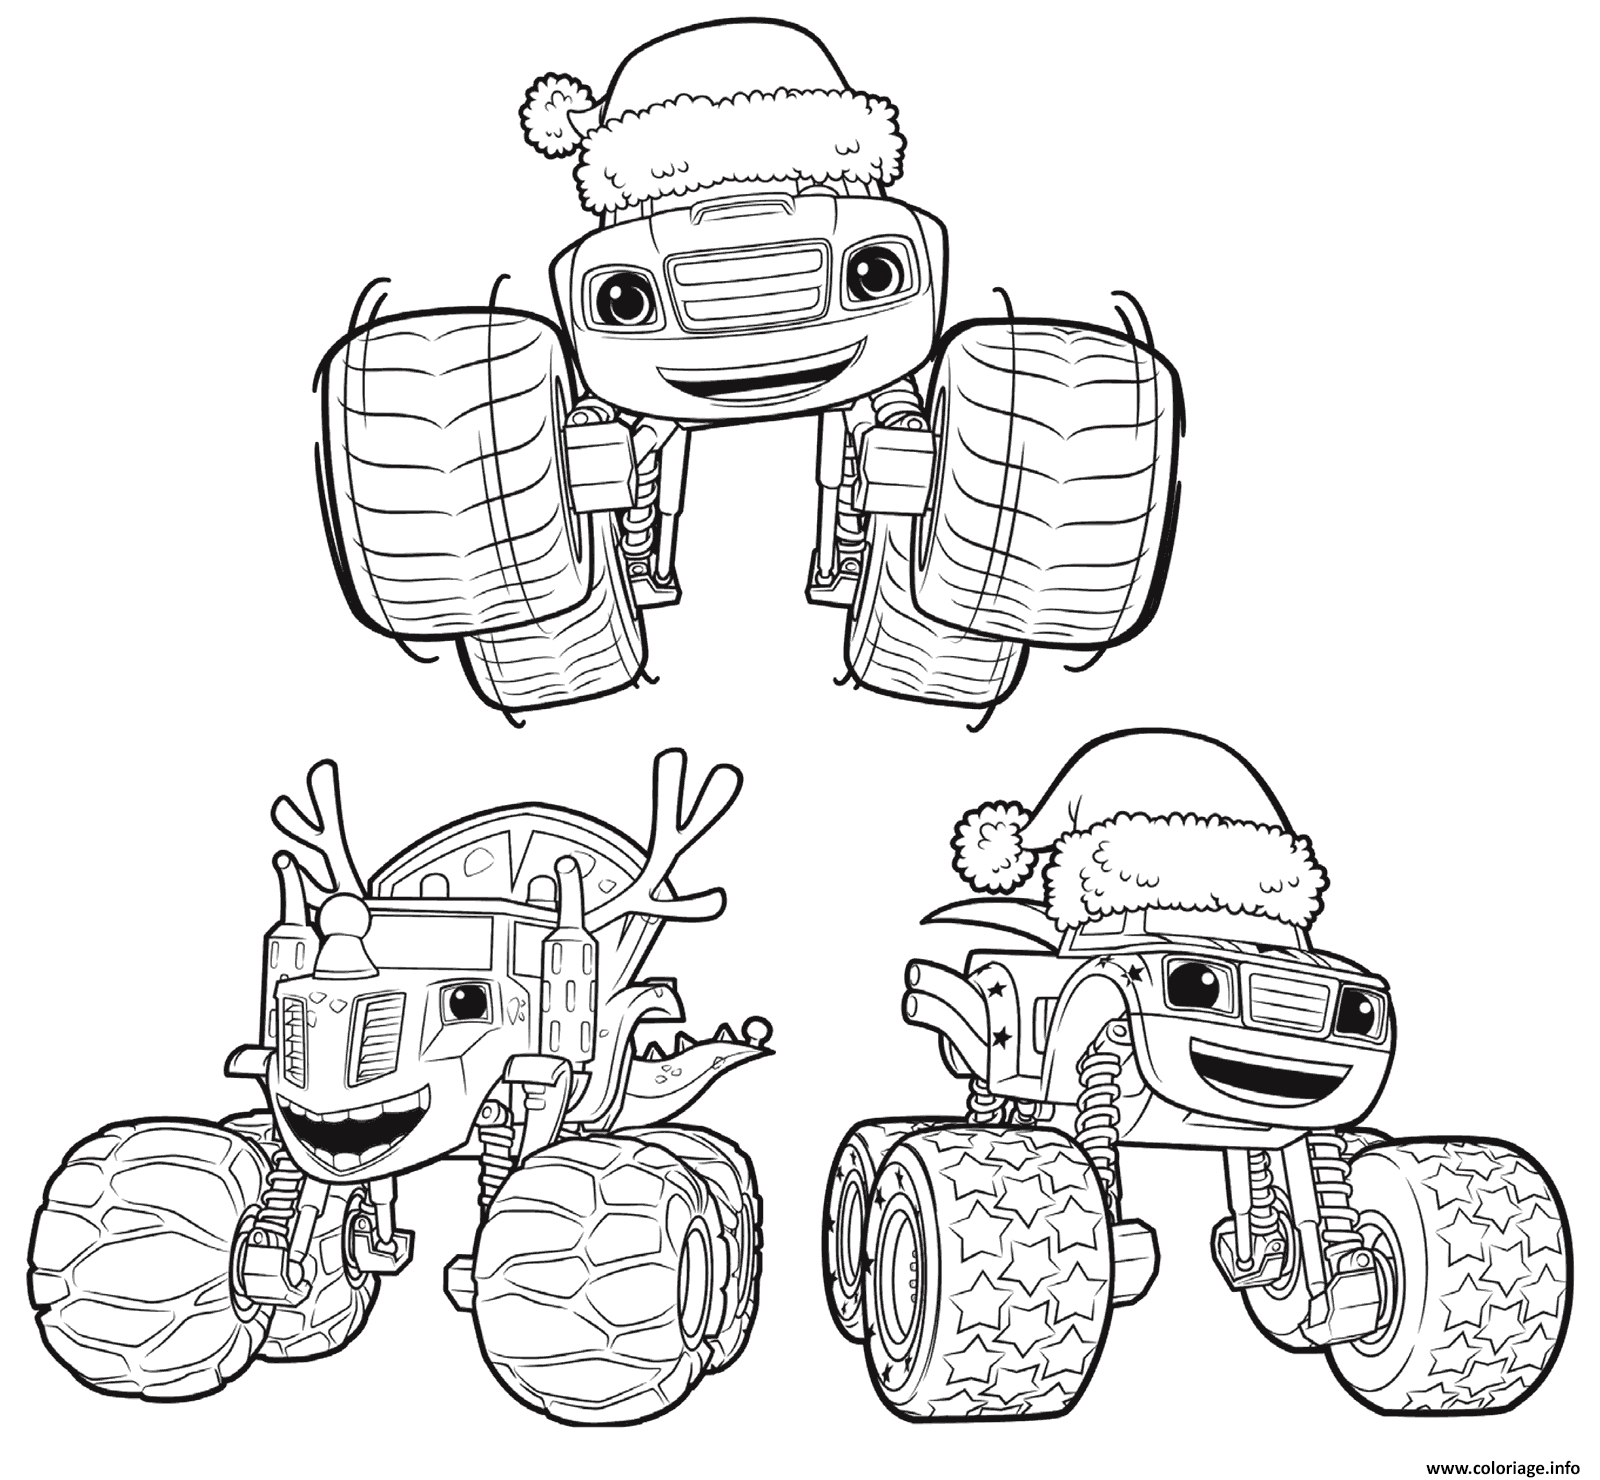 Coloriage voiture blaze 3 monster noel for Printable blaze coloring pages